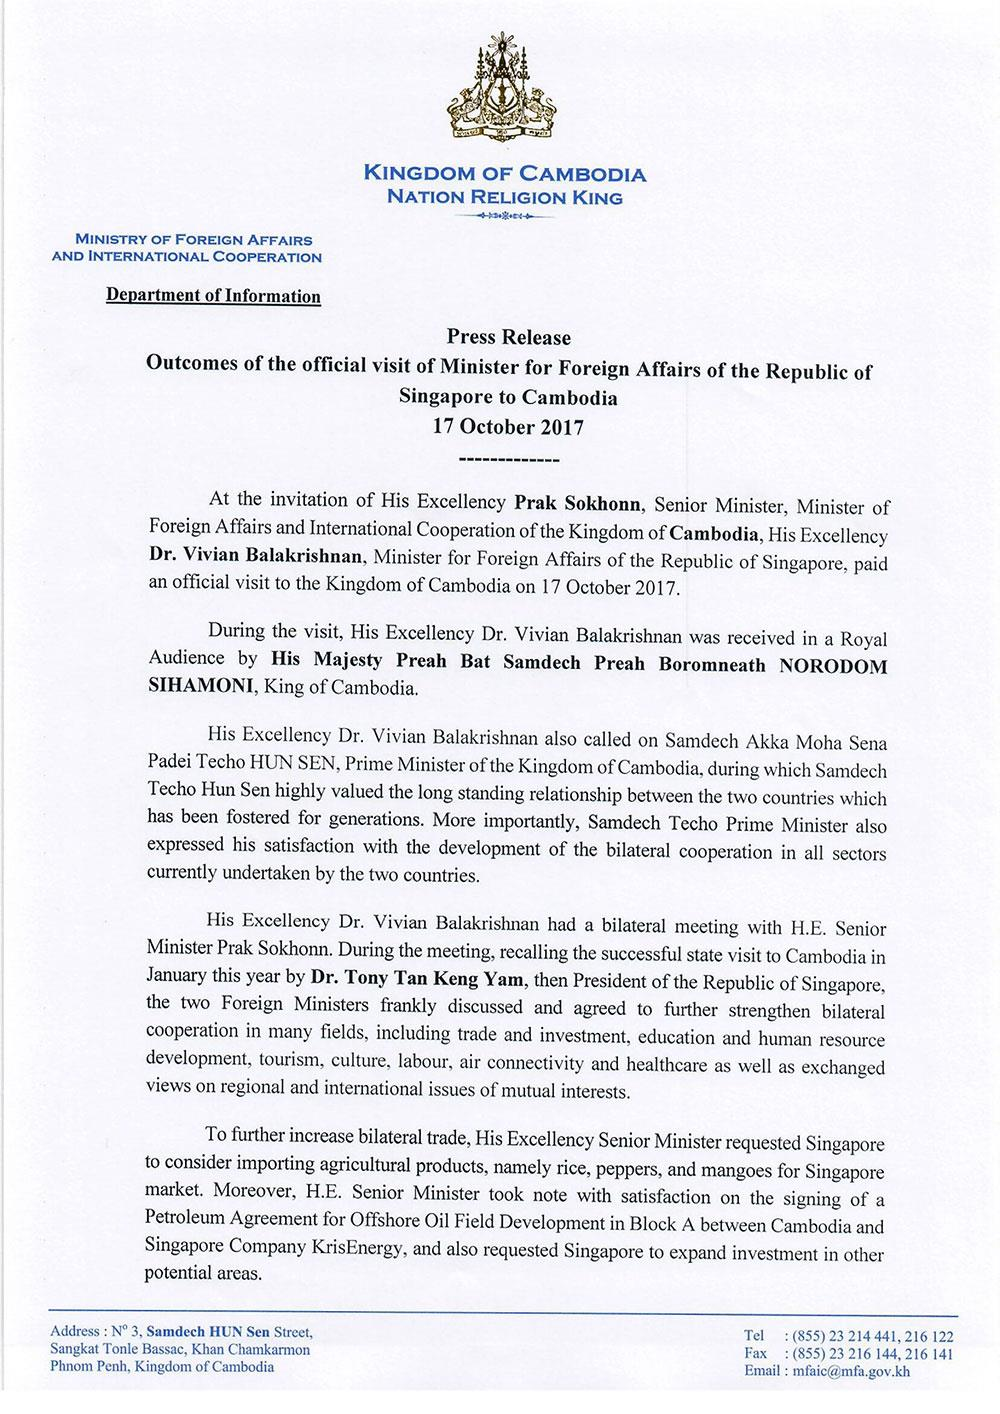 Ministry of Foreign Affairs Issue Press Release On Outcome